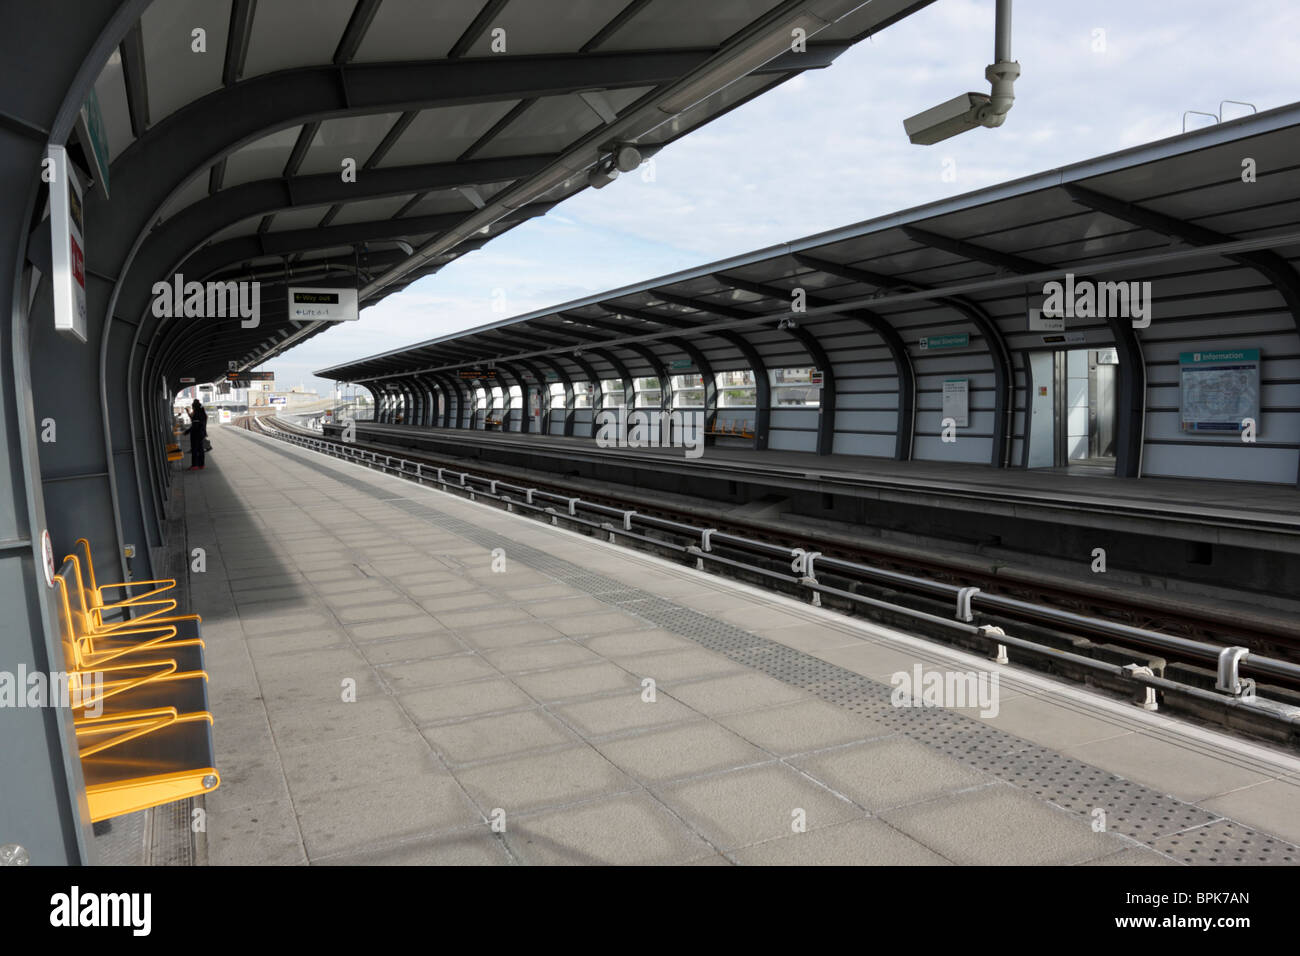 The West Silvertown Station platforms on the Docklands Light Railway system in east London. - Stock Image